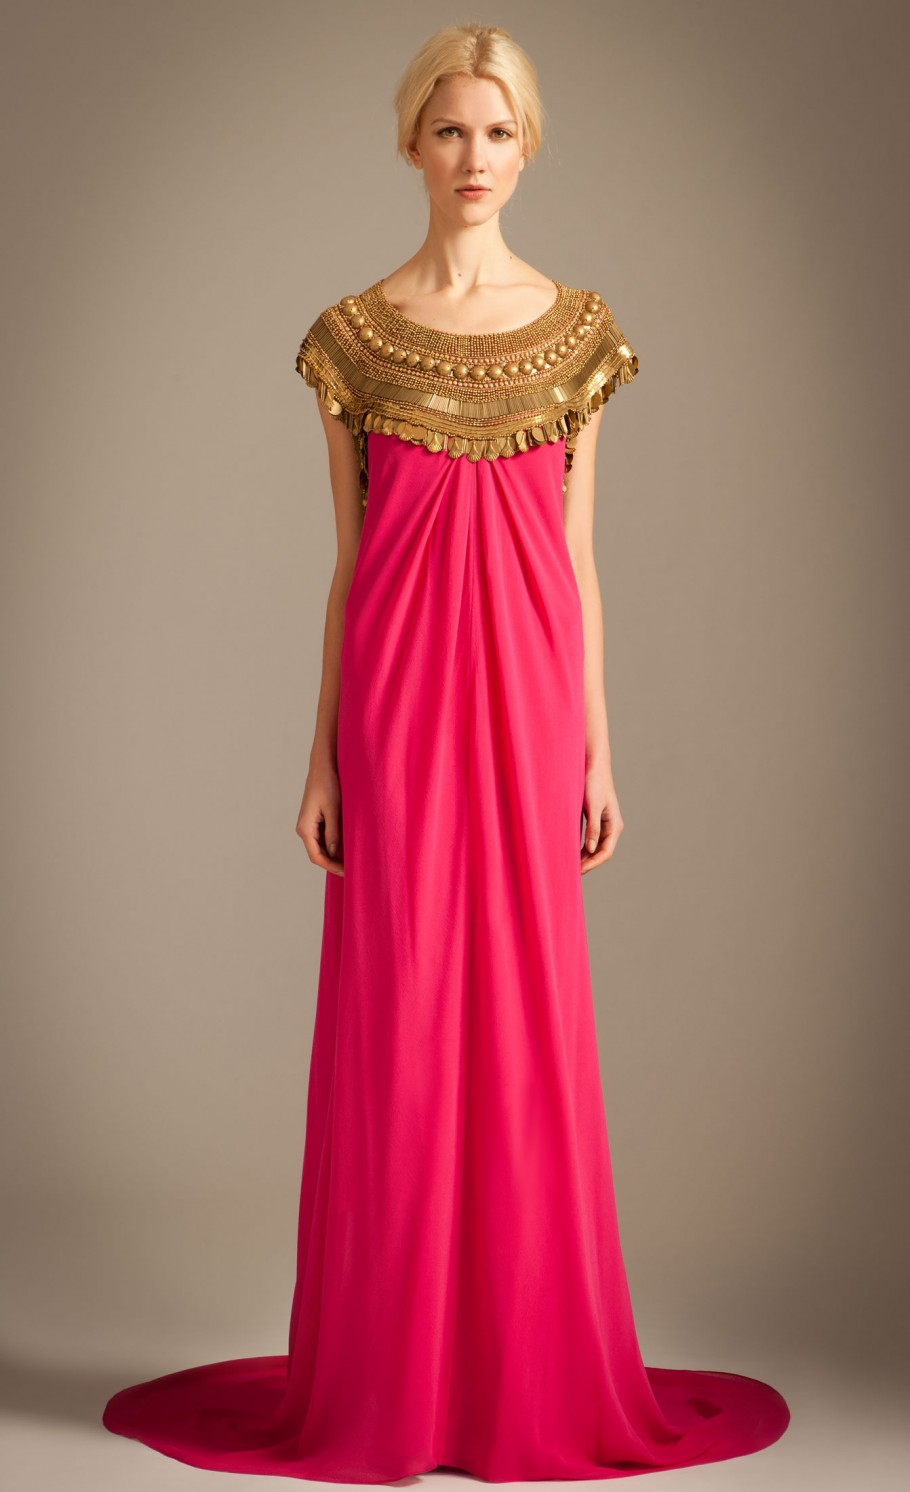 Lyst - Temperley London Goddess Dress in Pink